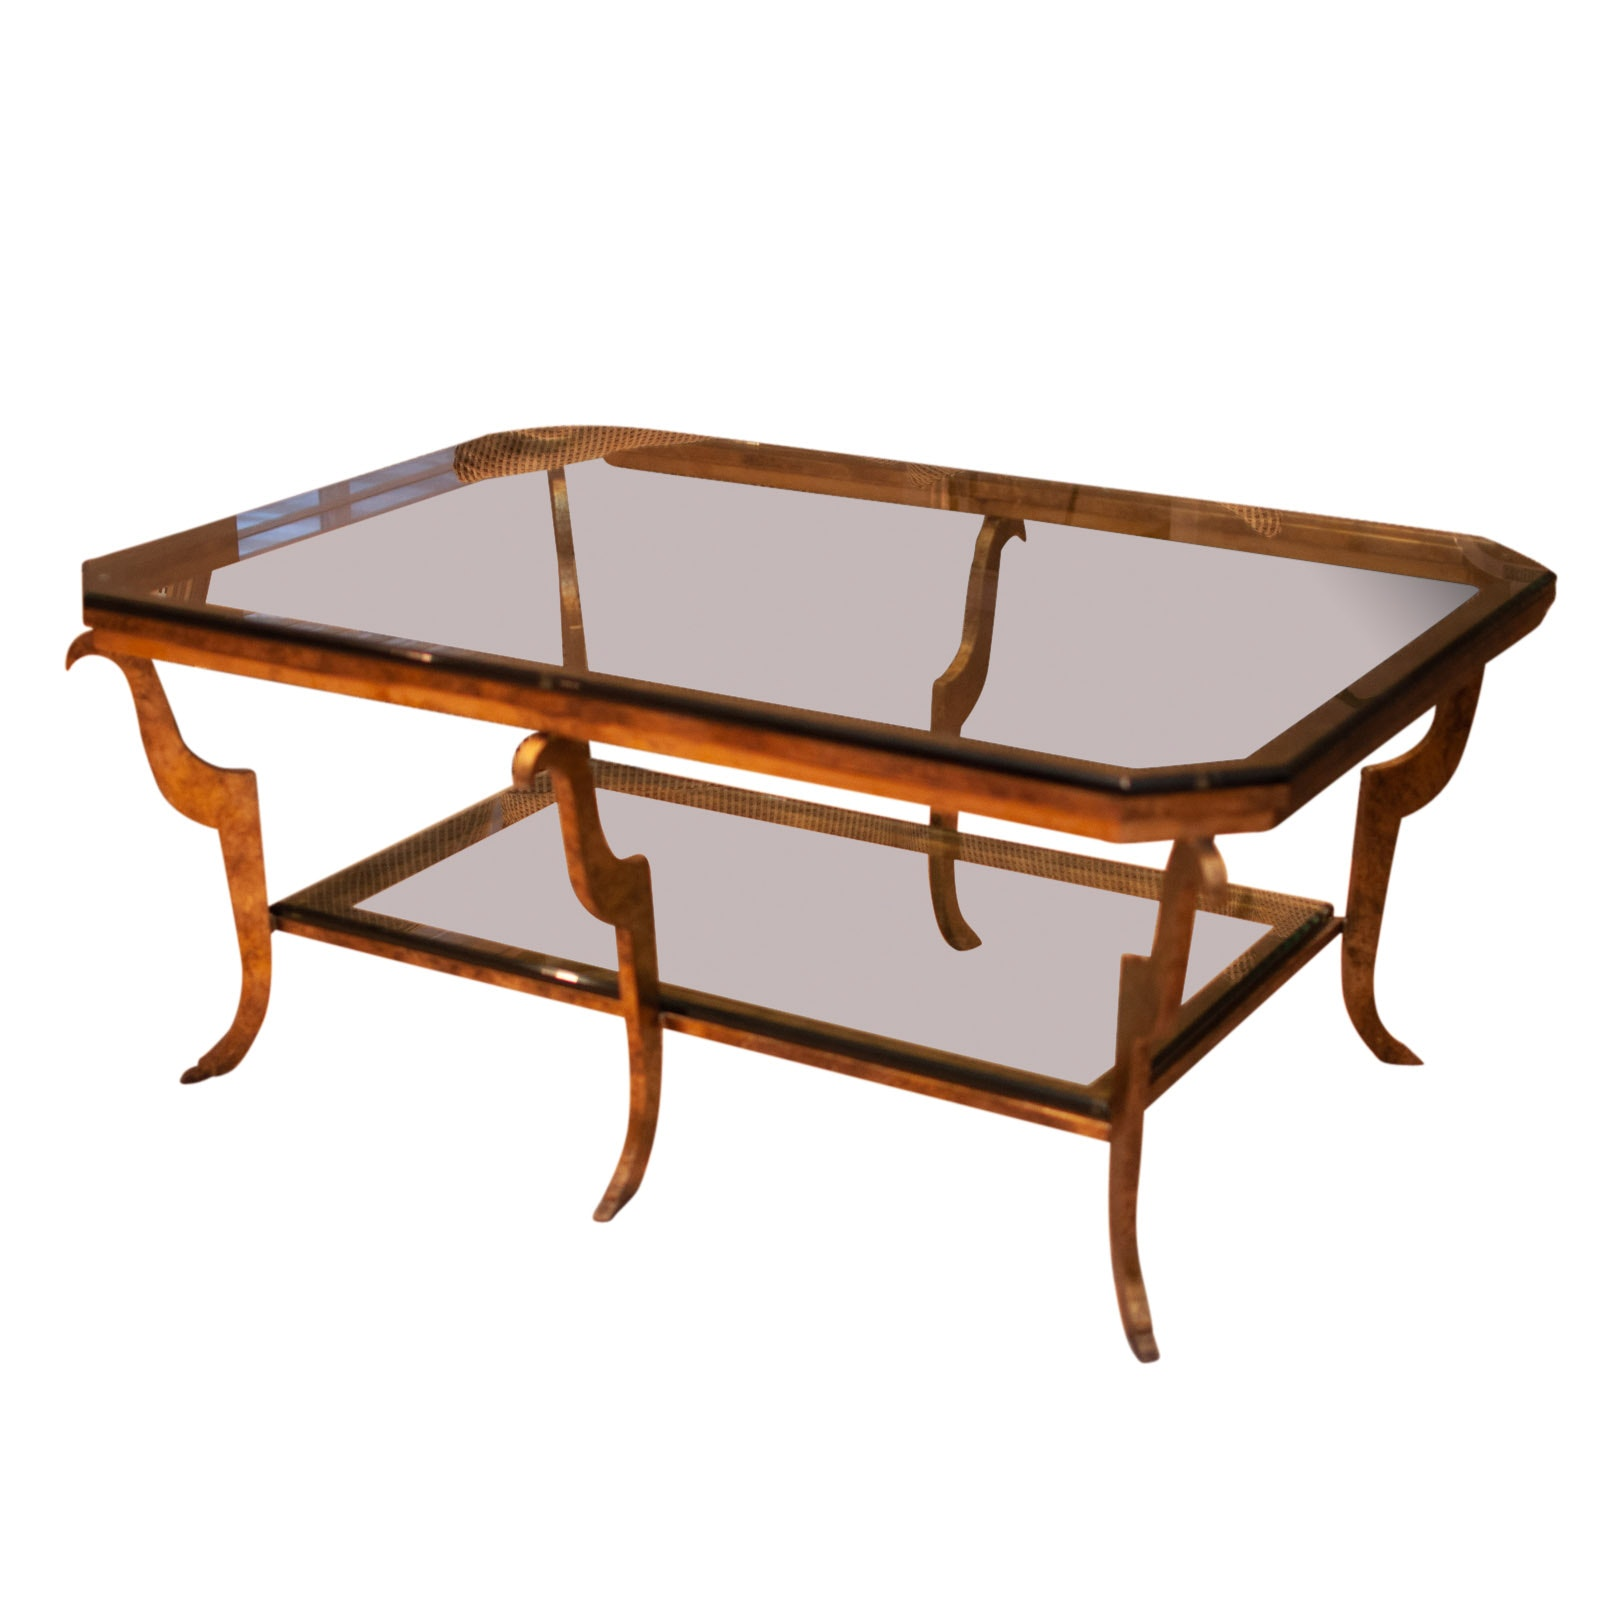 Rectangular Metal and Beveled Glass Coffee Table With Notched Corners by Swaim